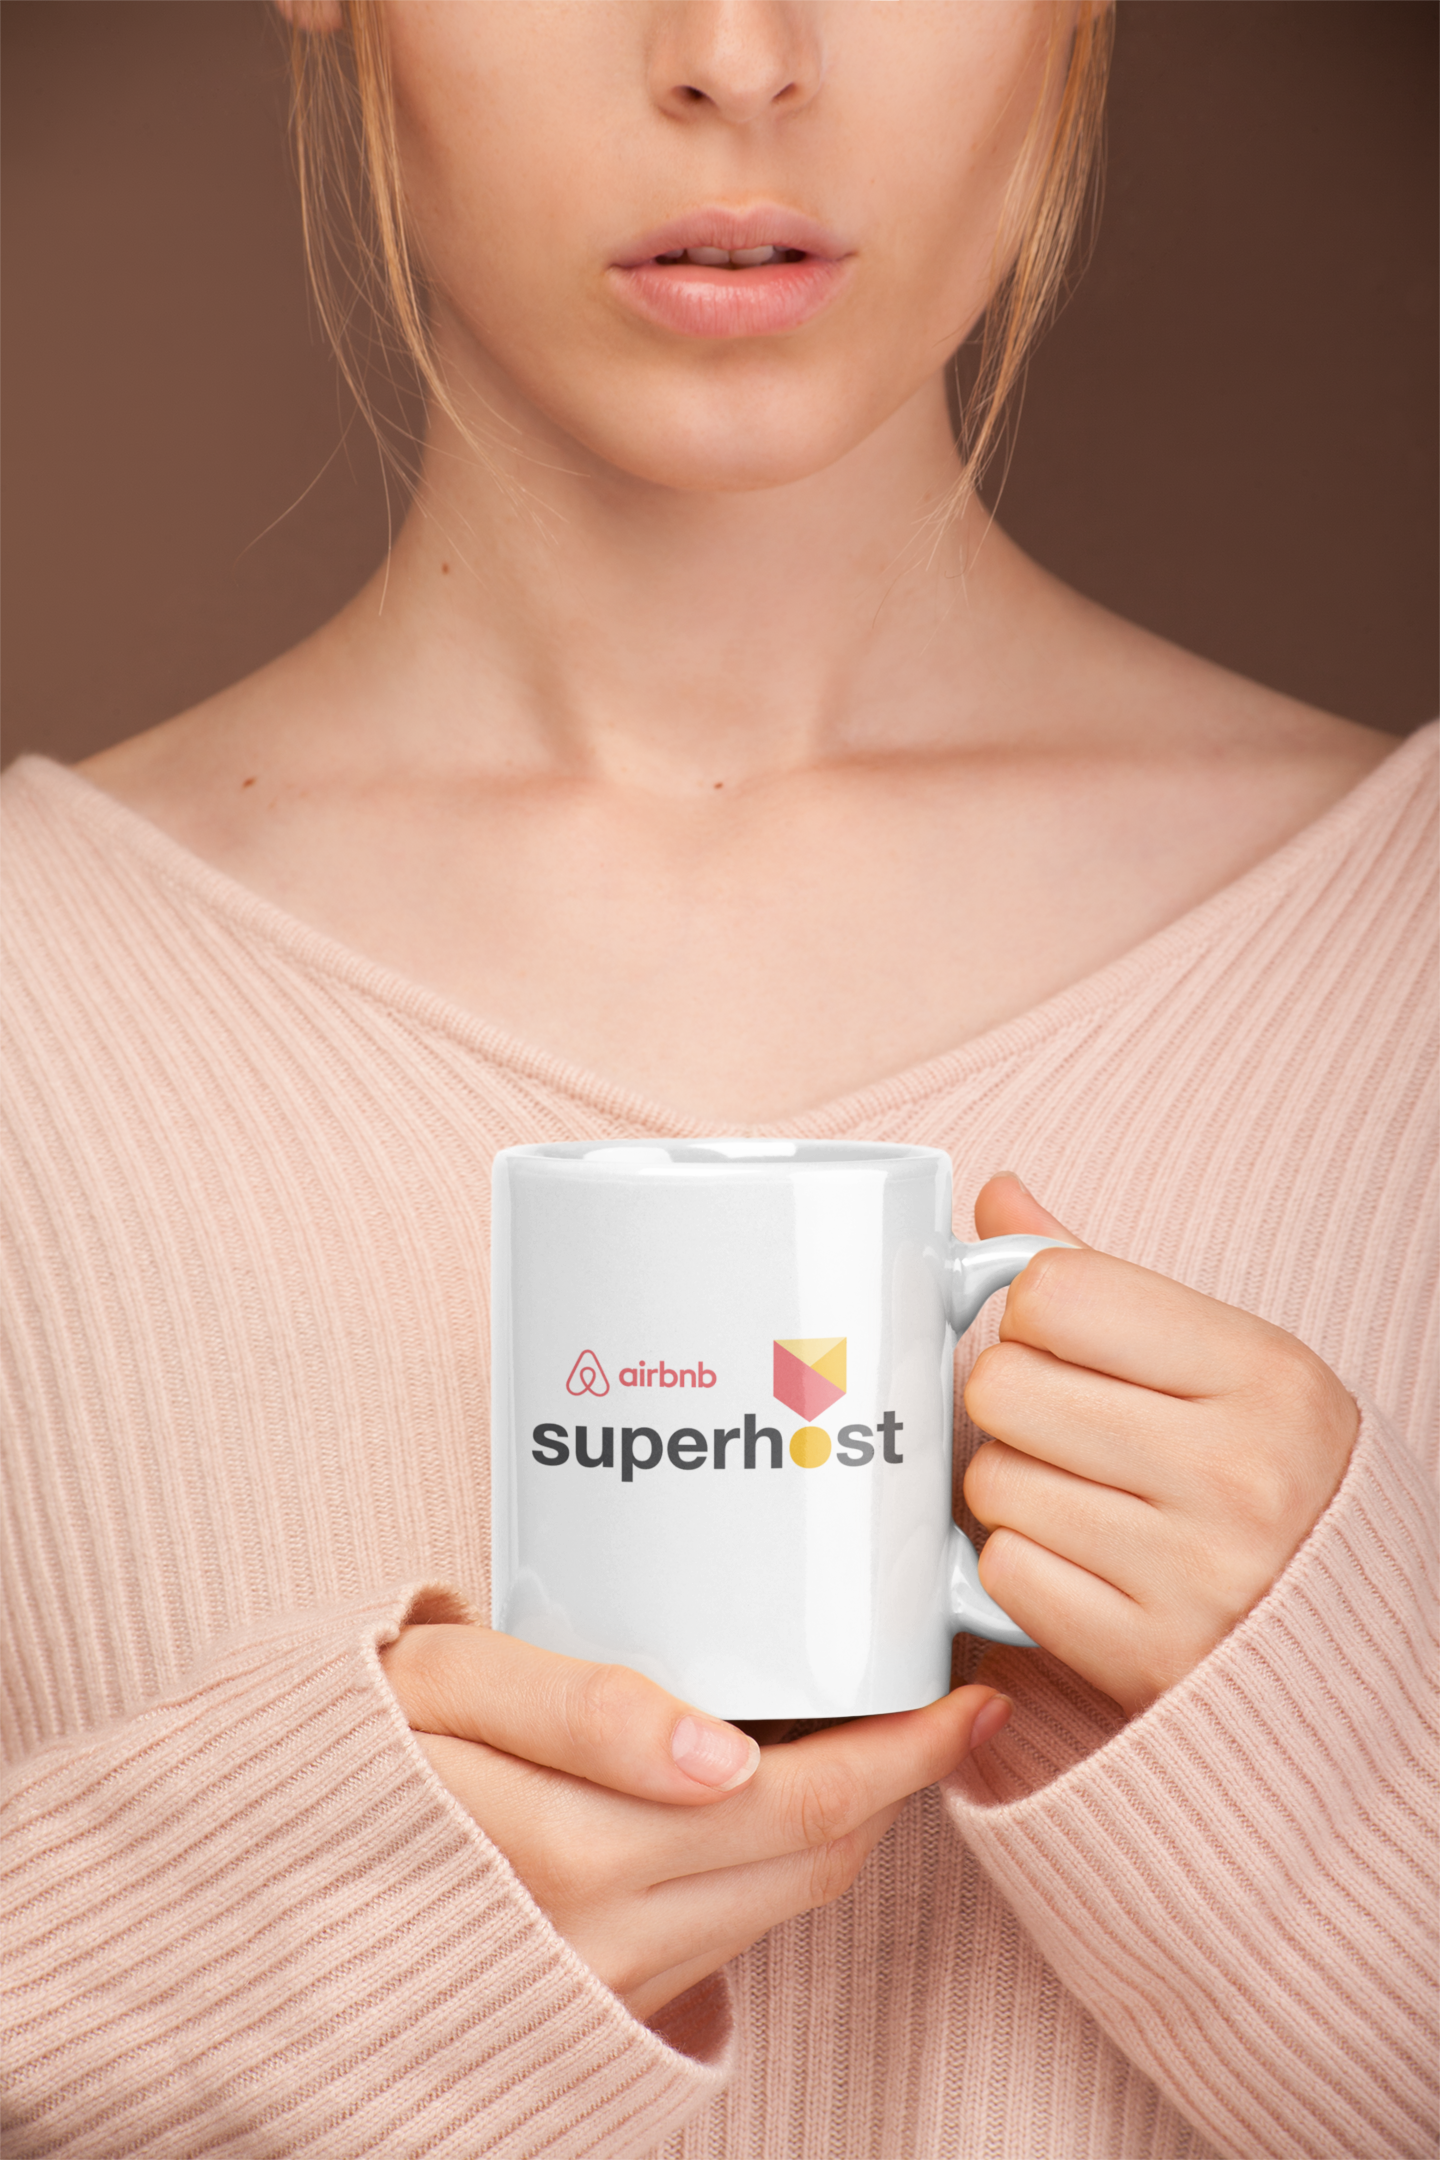 Left-Eye-Creations-mockup-of-a-mug-held-by-a-woman-with-delicate-features-AirBnb.png